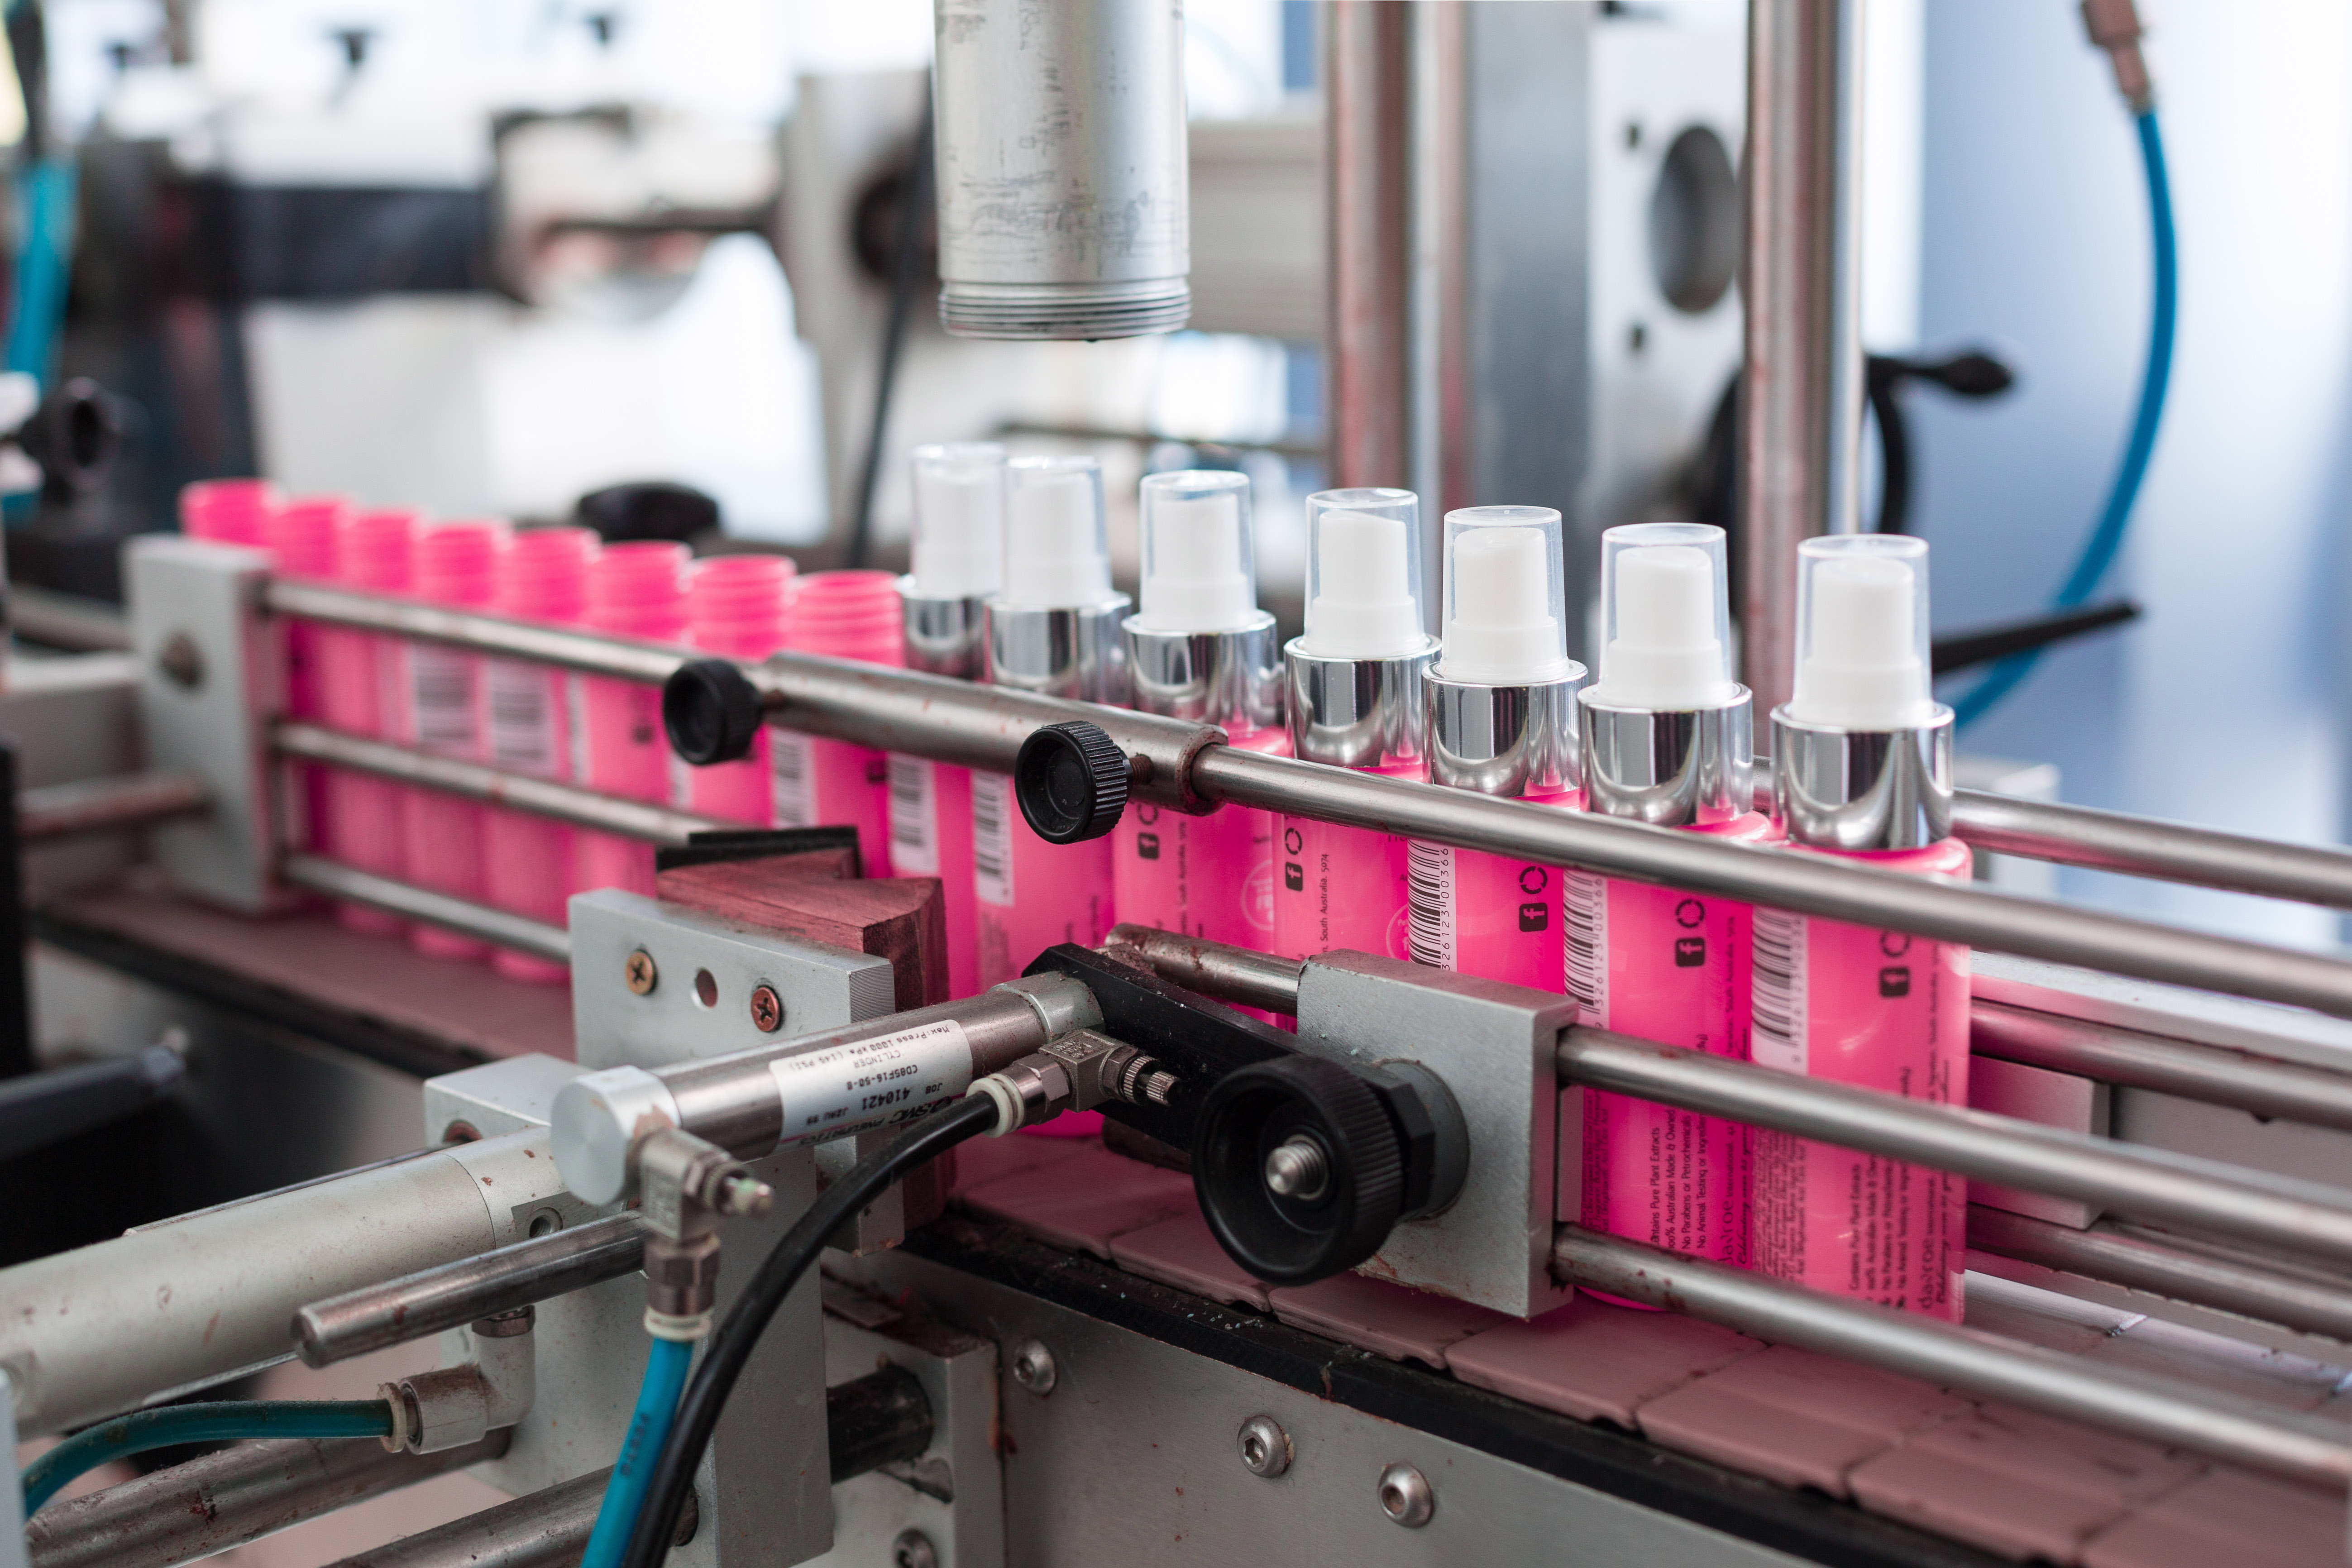 Liquid filling is one of our packaging and assembly solutions